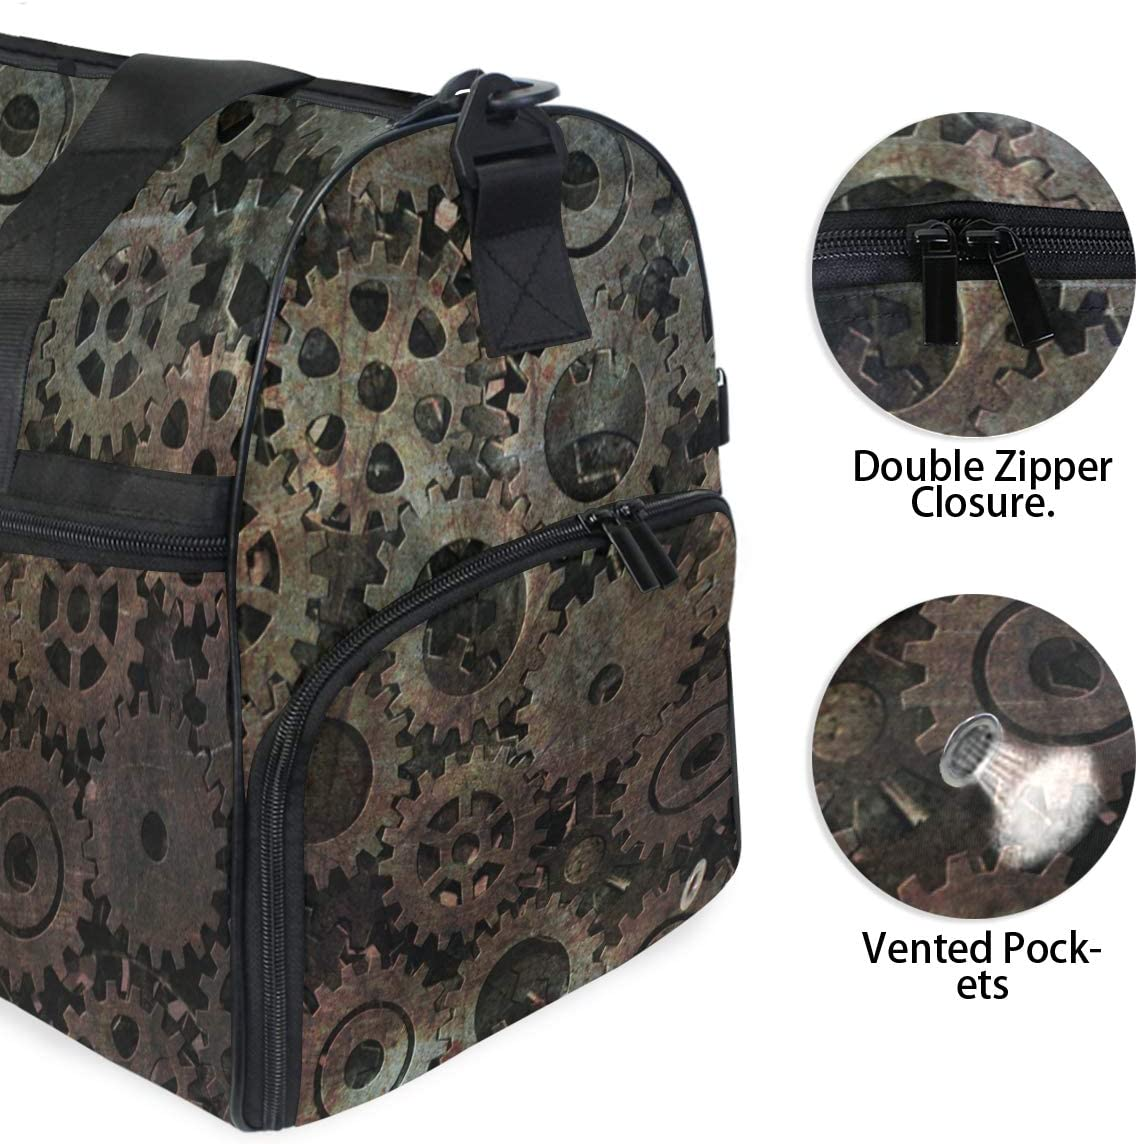 MUOOUM Gear Machine Wheel Large Duffle Bags Sports Gym Bag with Shoes Compartment for Men and Women